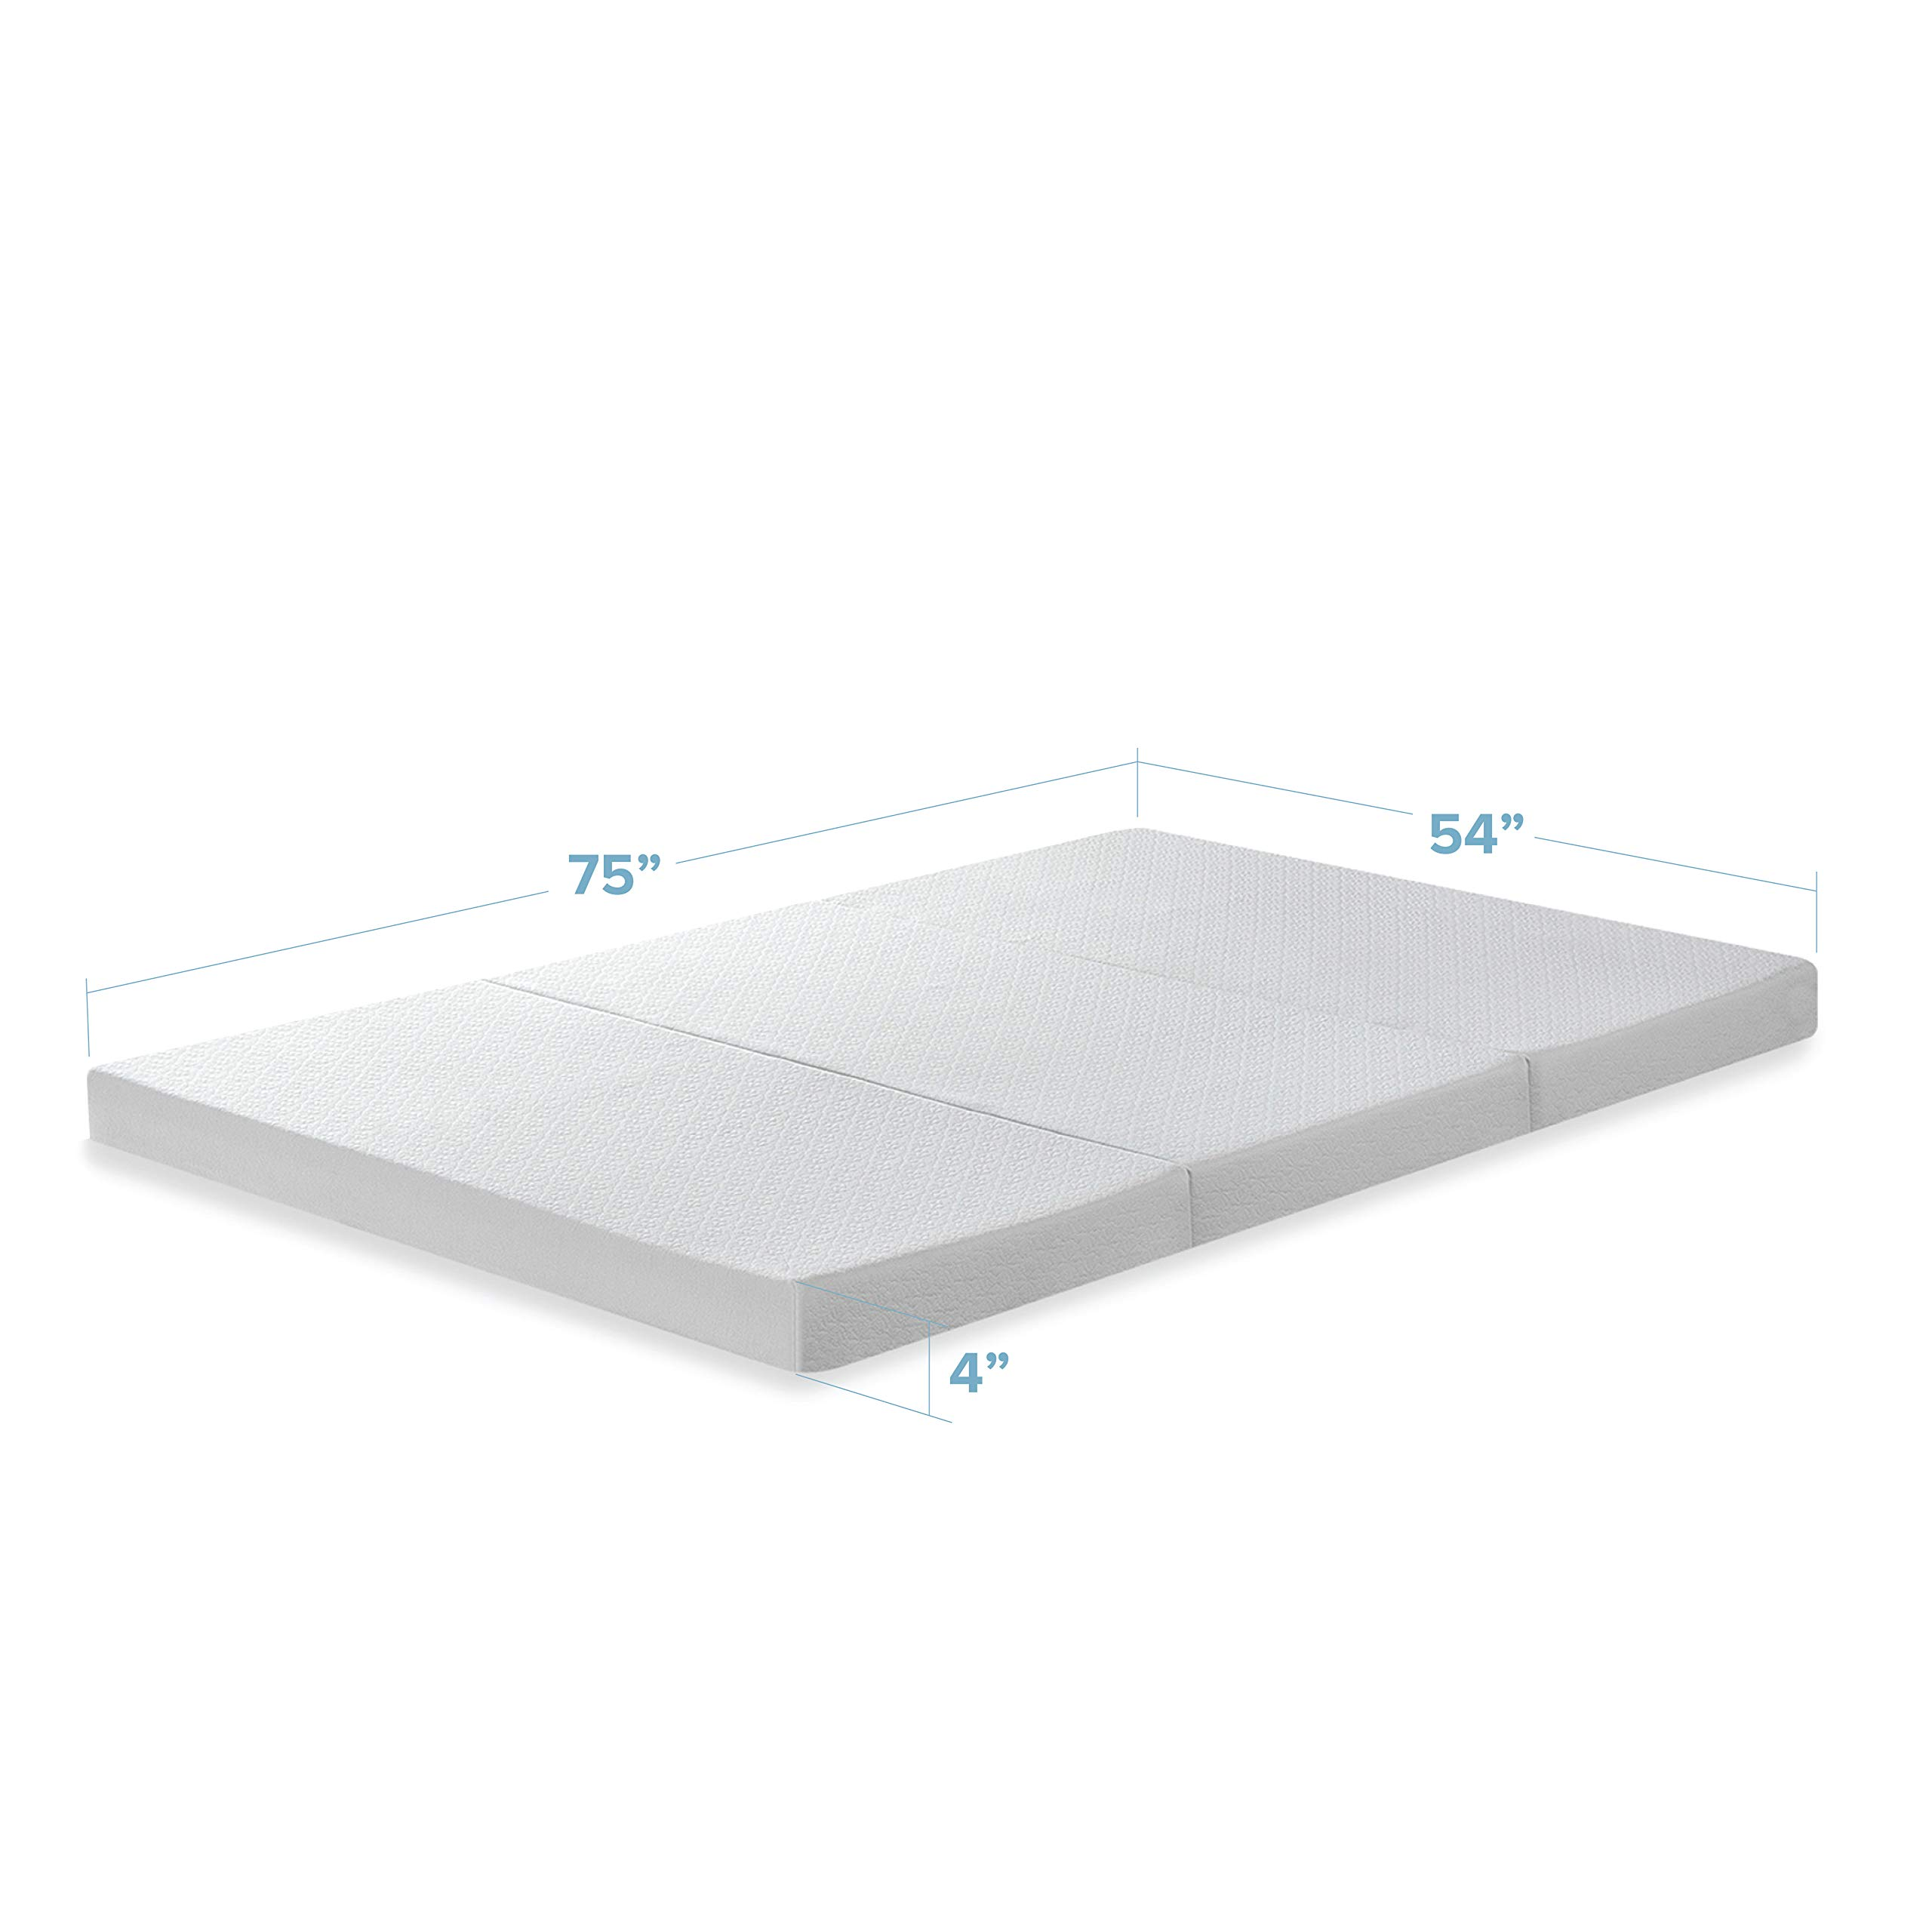 Best Price Mattress 4'' Full Trifold Mattress Topper - CertiPUR-US Memory Foam Mattress Topper with Cover, Full size by Best Price Mattress